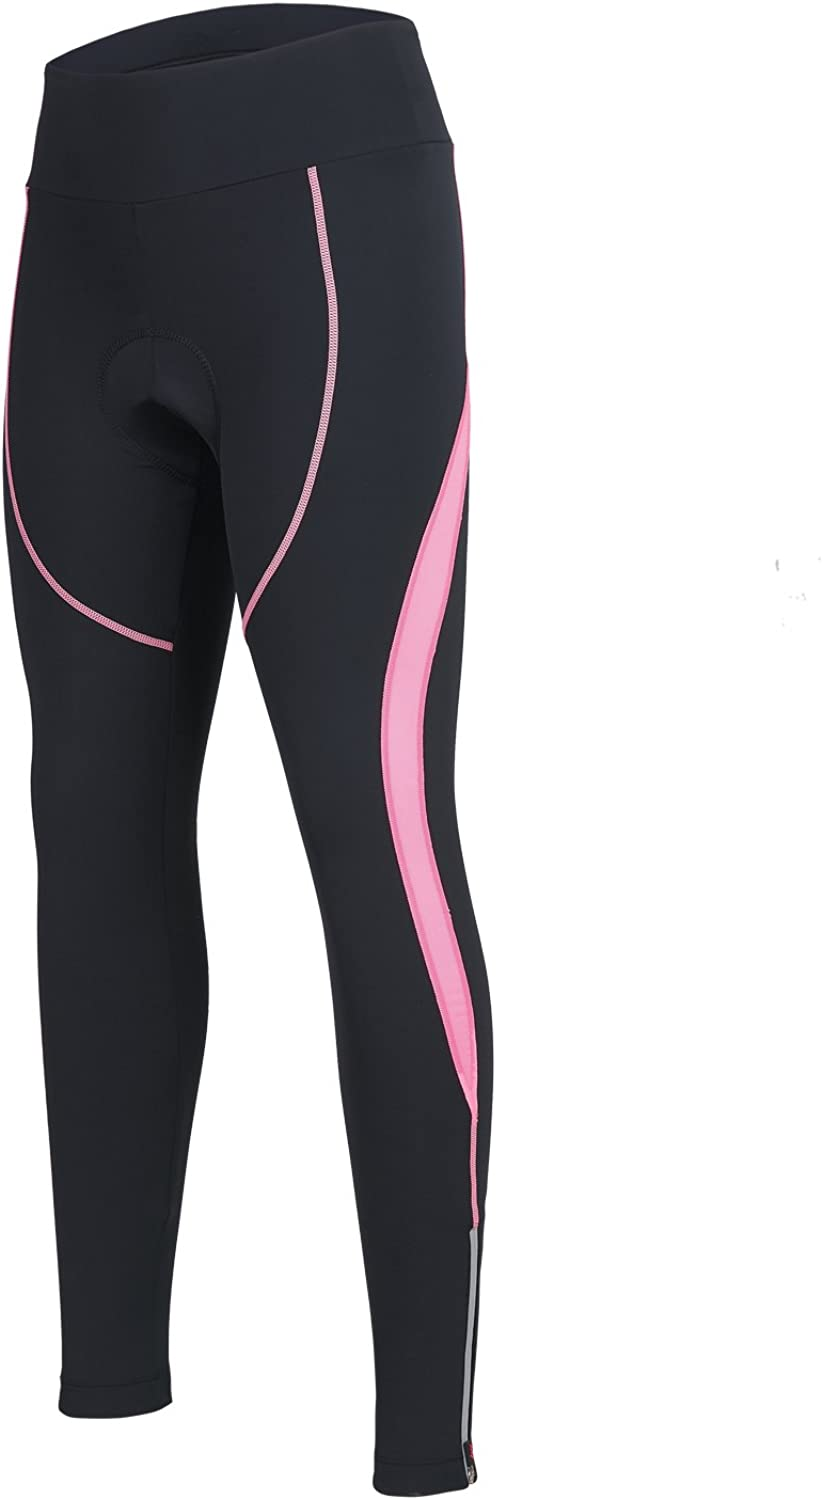 Women's Cycling Pants 3D Padded Compression Tight, Long Bike Bicycle Pants with Wide Waistband : Clothing